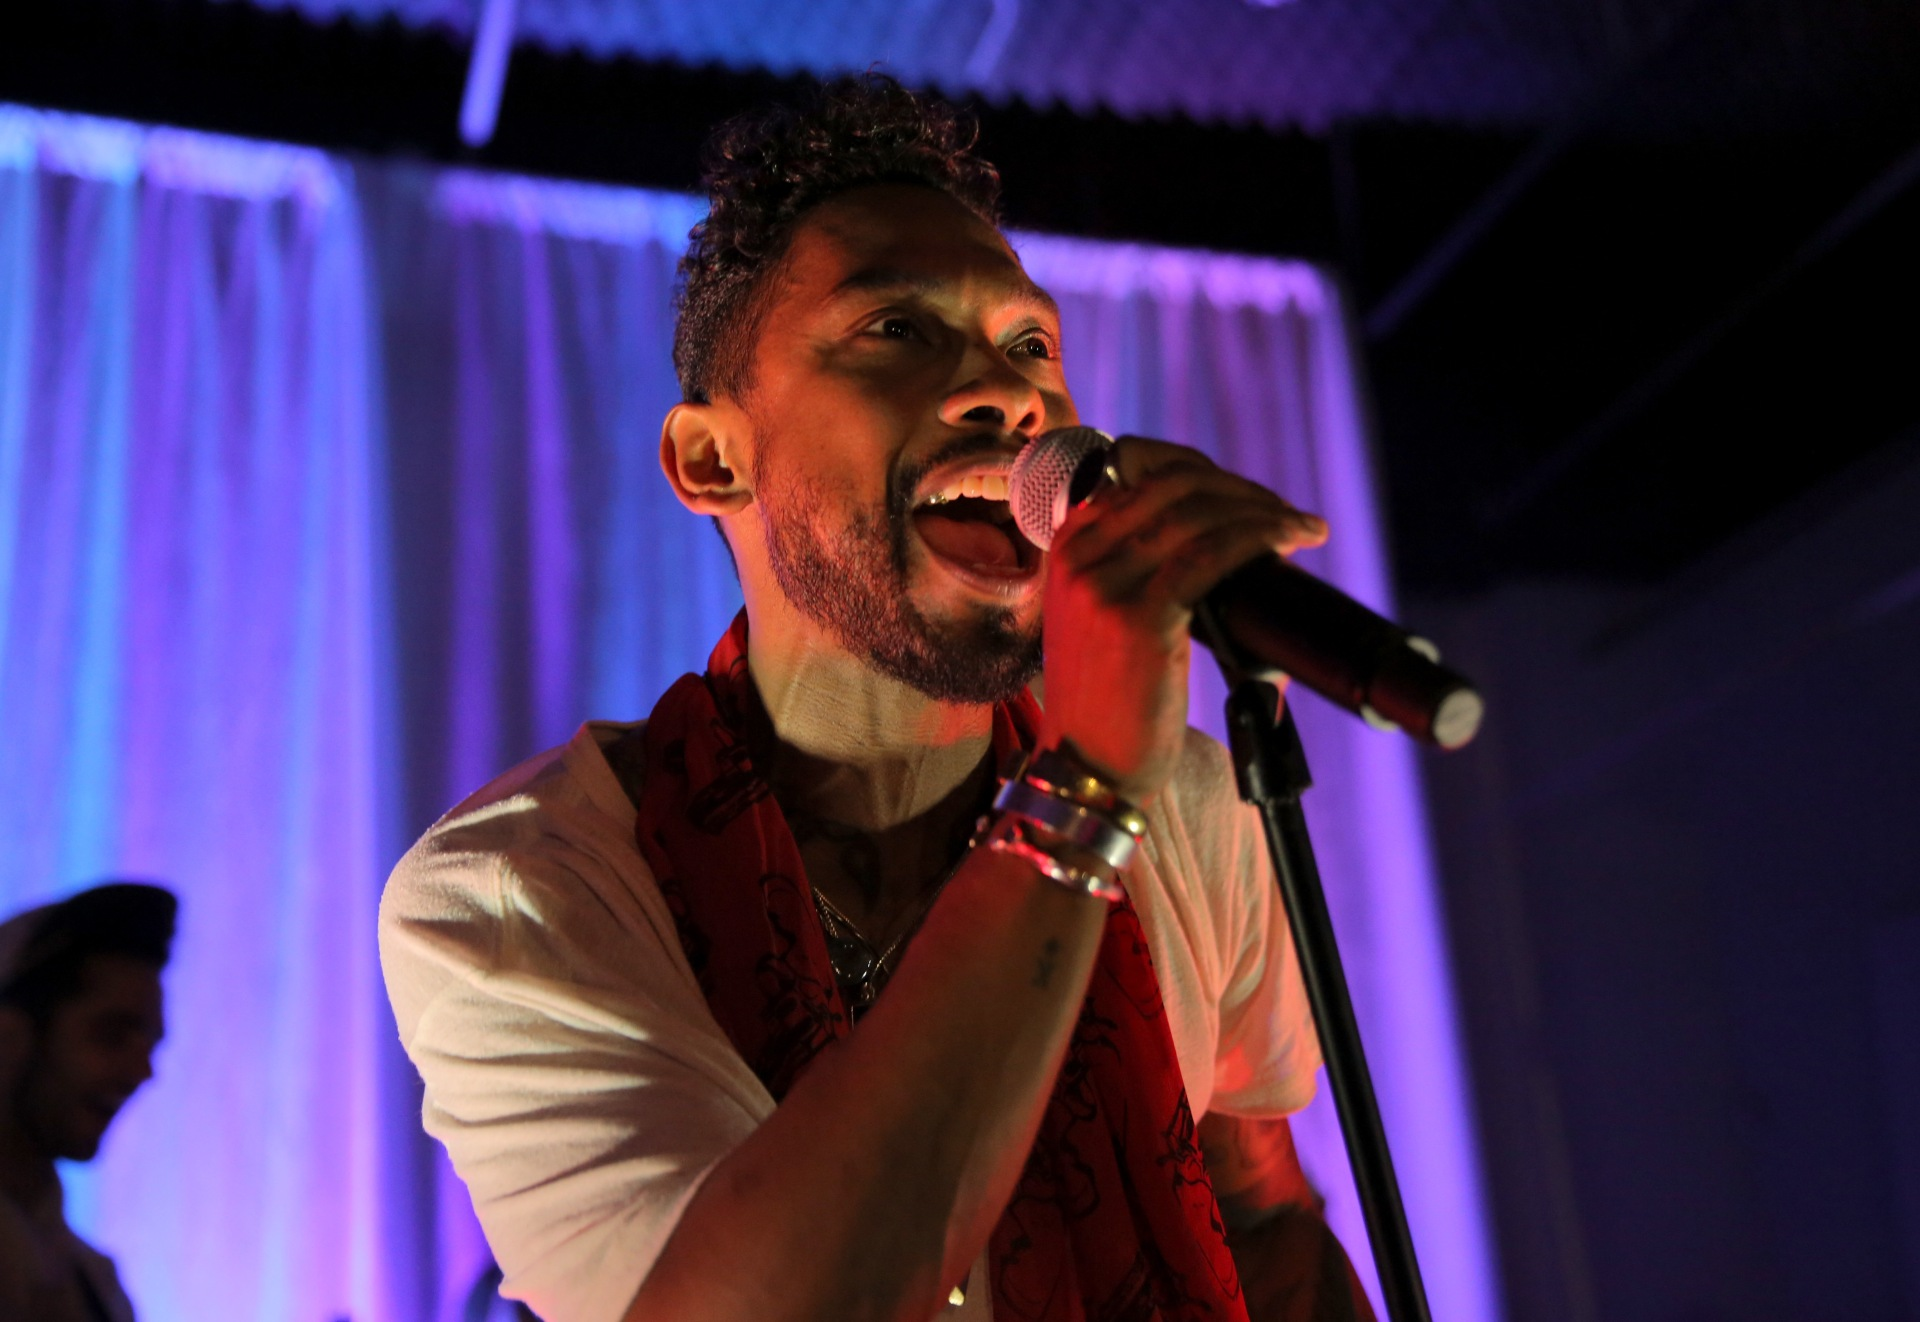 RECAP: SONOS Studio and Pandora Radio Present - An Evening With Miguel